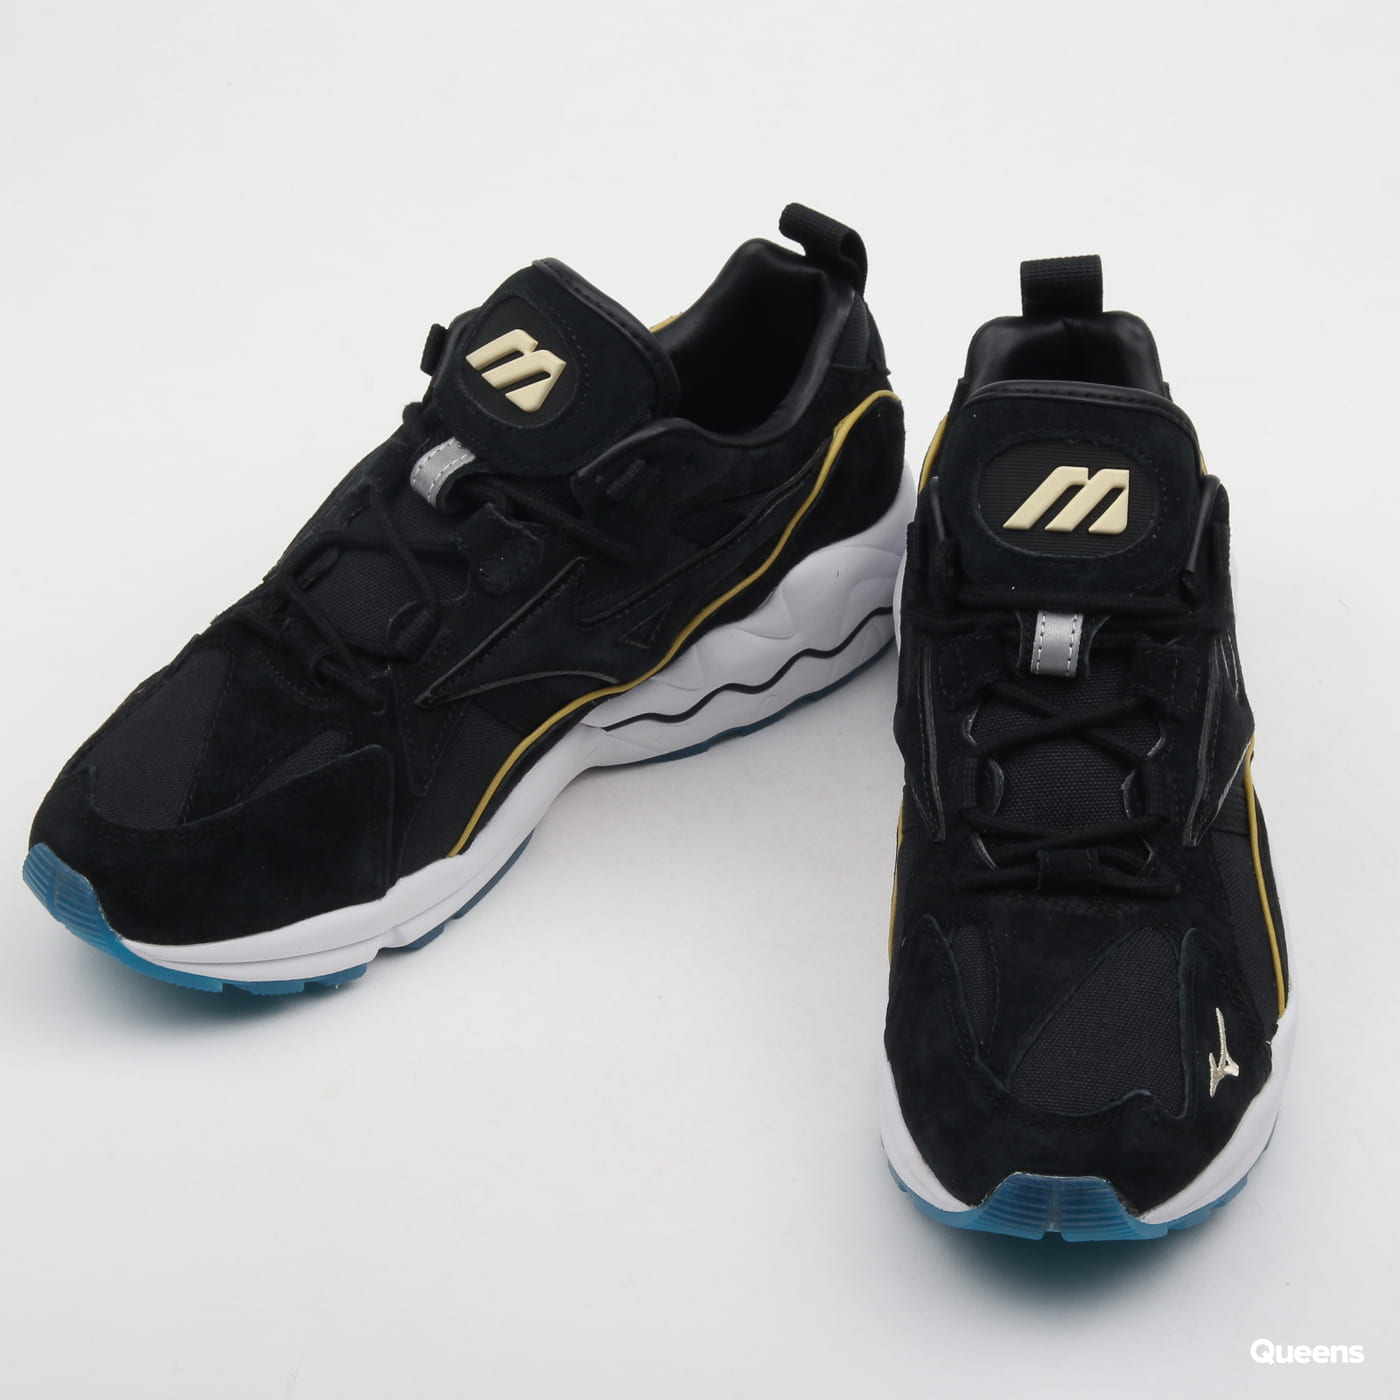 mizuno womens volleyball shoes size 8 x 1 jersey negro price